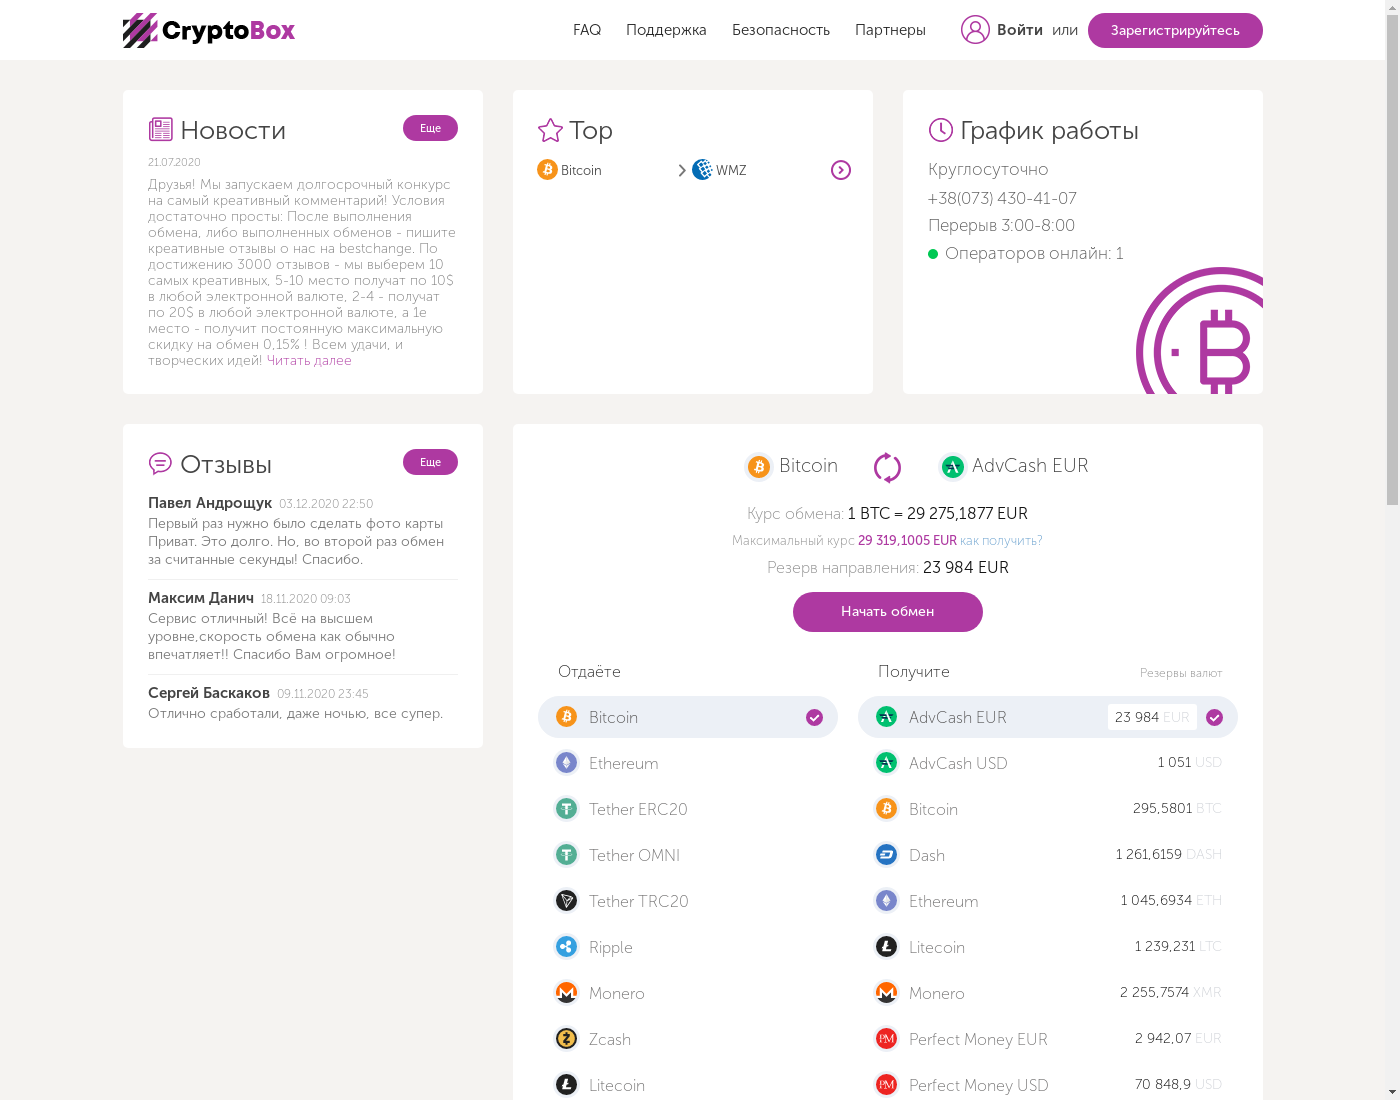 CryptoBox user interface: the home page in English